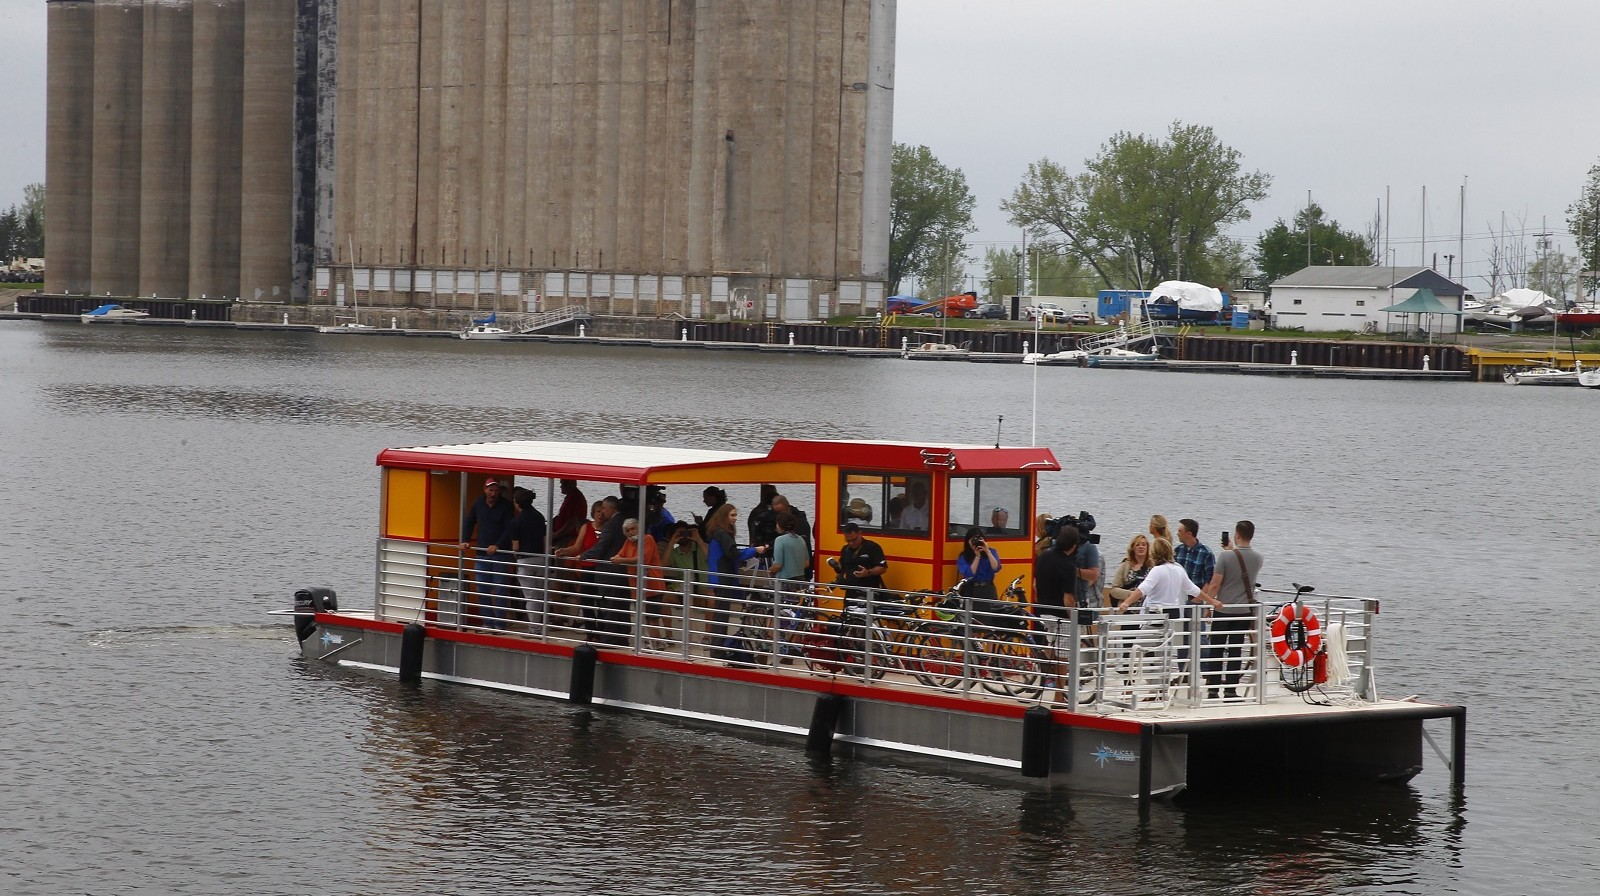 The Queen City Bike Ferry connects Canalside to the Outer Harbor at an affordable rate.  (John Hickey/Buffalo News)